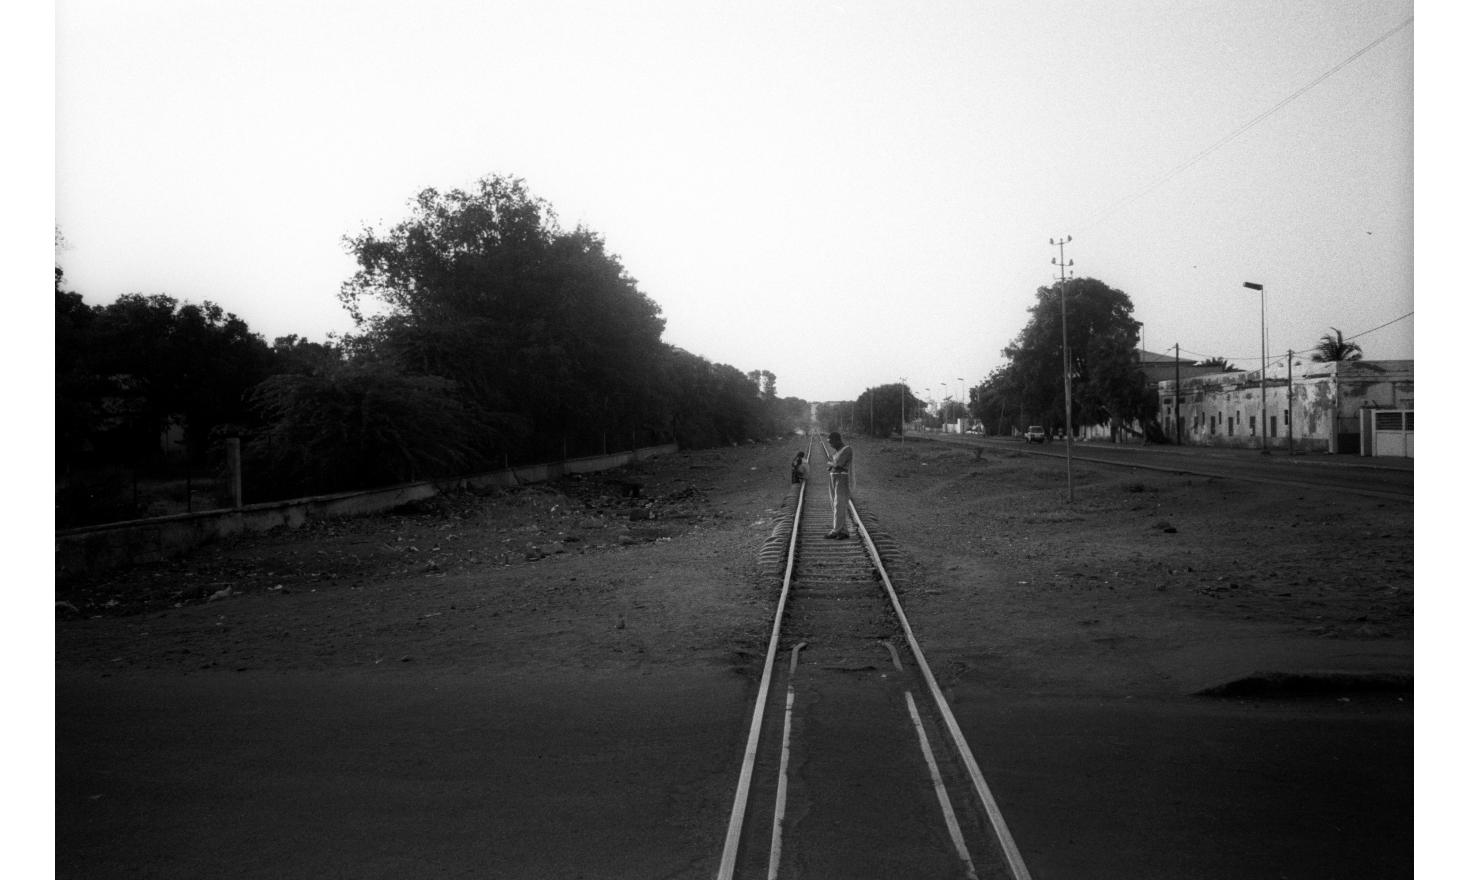 Railway from Djibouti to Holhol